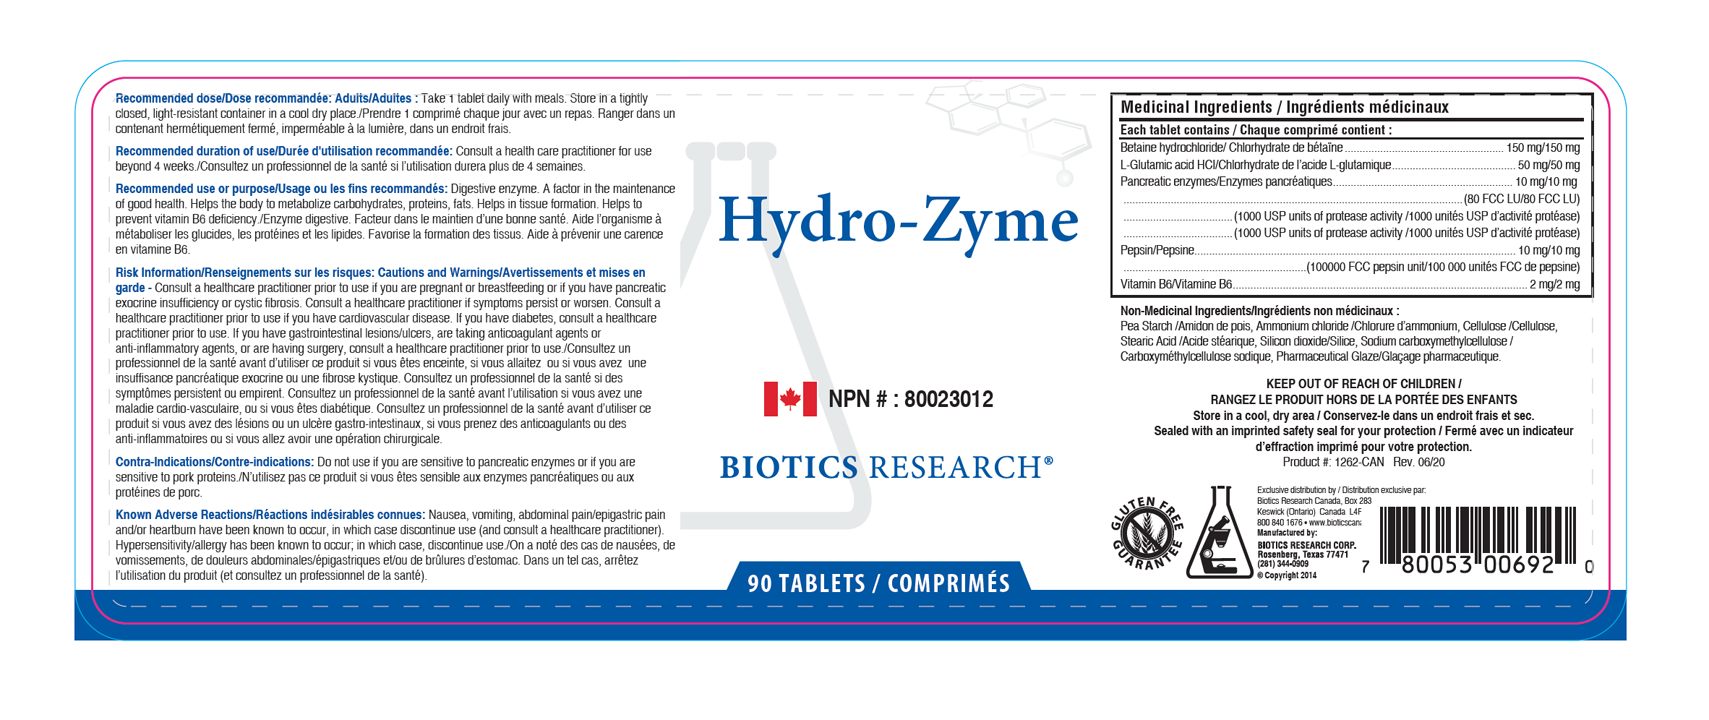 Hydro-Zyme - 90 Tablets - Label